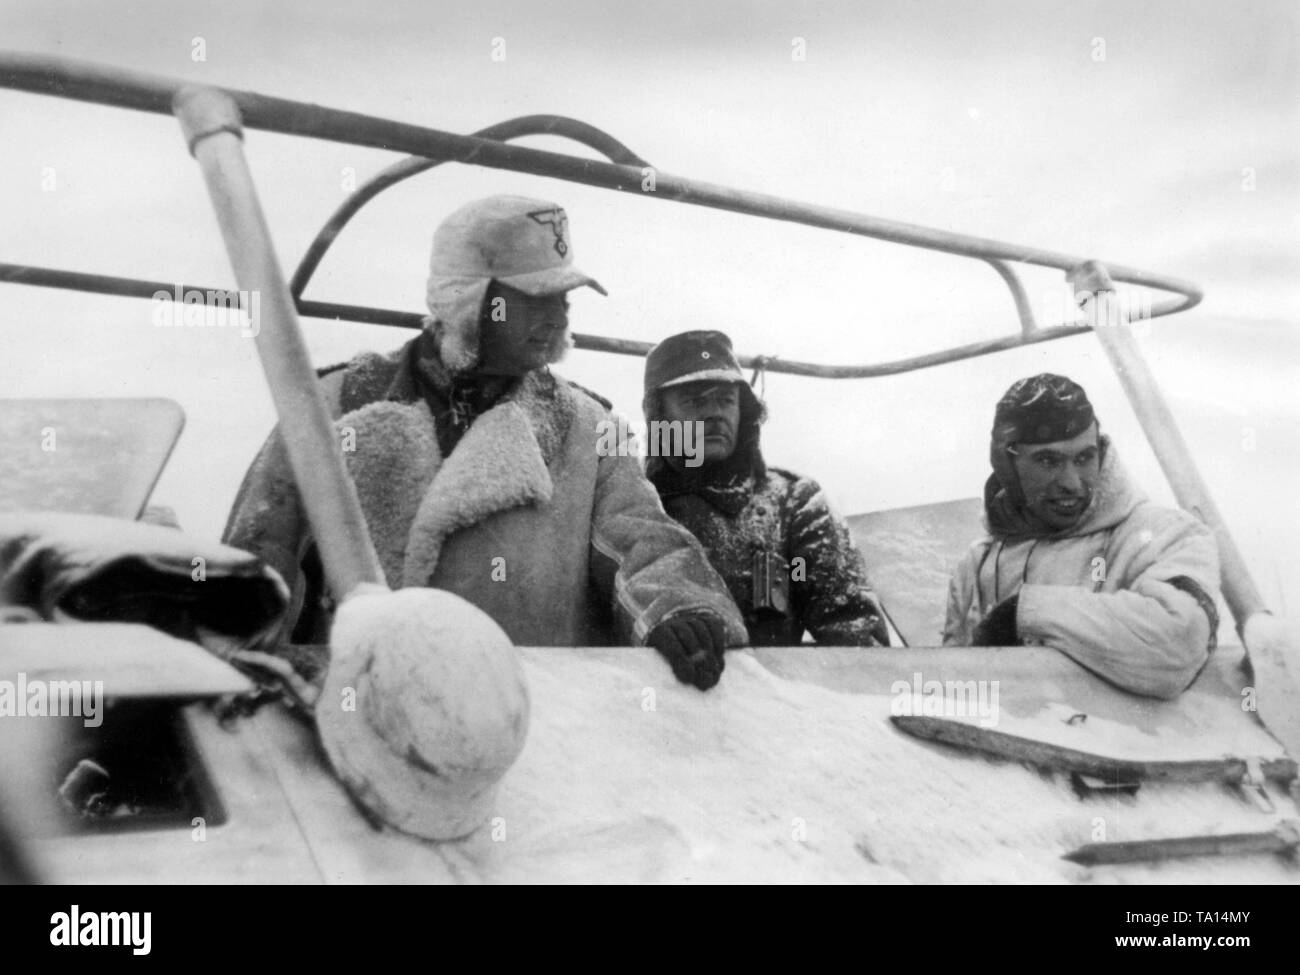 Colonel-General and bearer of the Knight's Cross of the Iron Cross Rudolf Schmidt (left) on an armored reconnaissance car near the northern Russian city of Toropez. Photo of the Propaganda Company (PK): SS war correspondent Tufts. - Stock Image